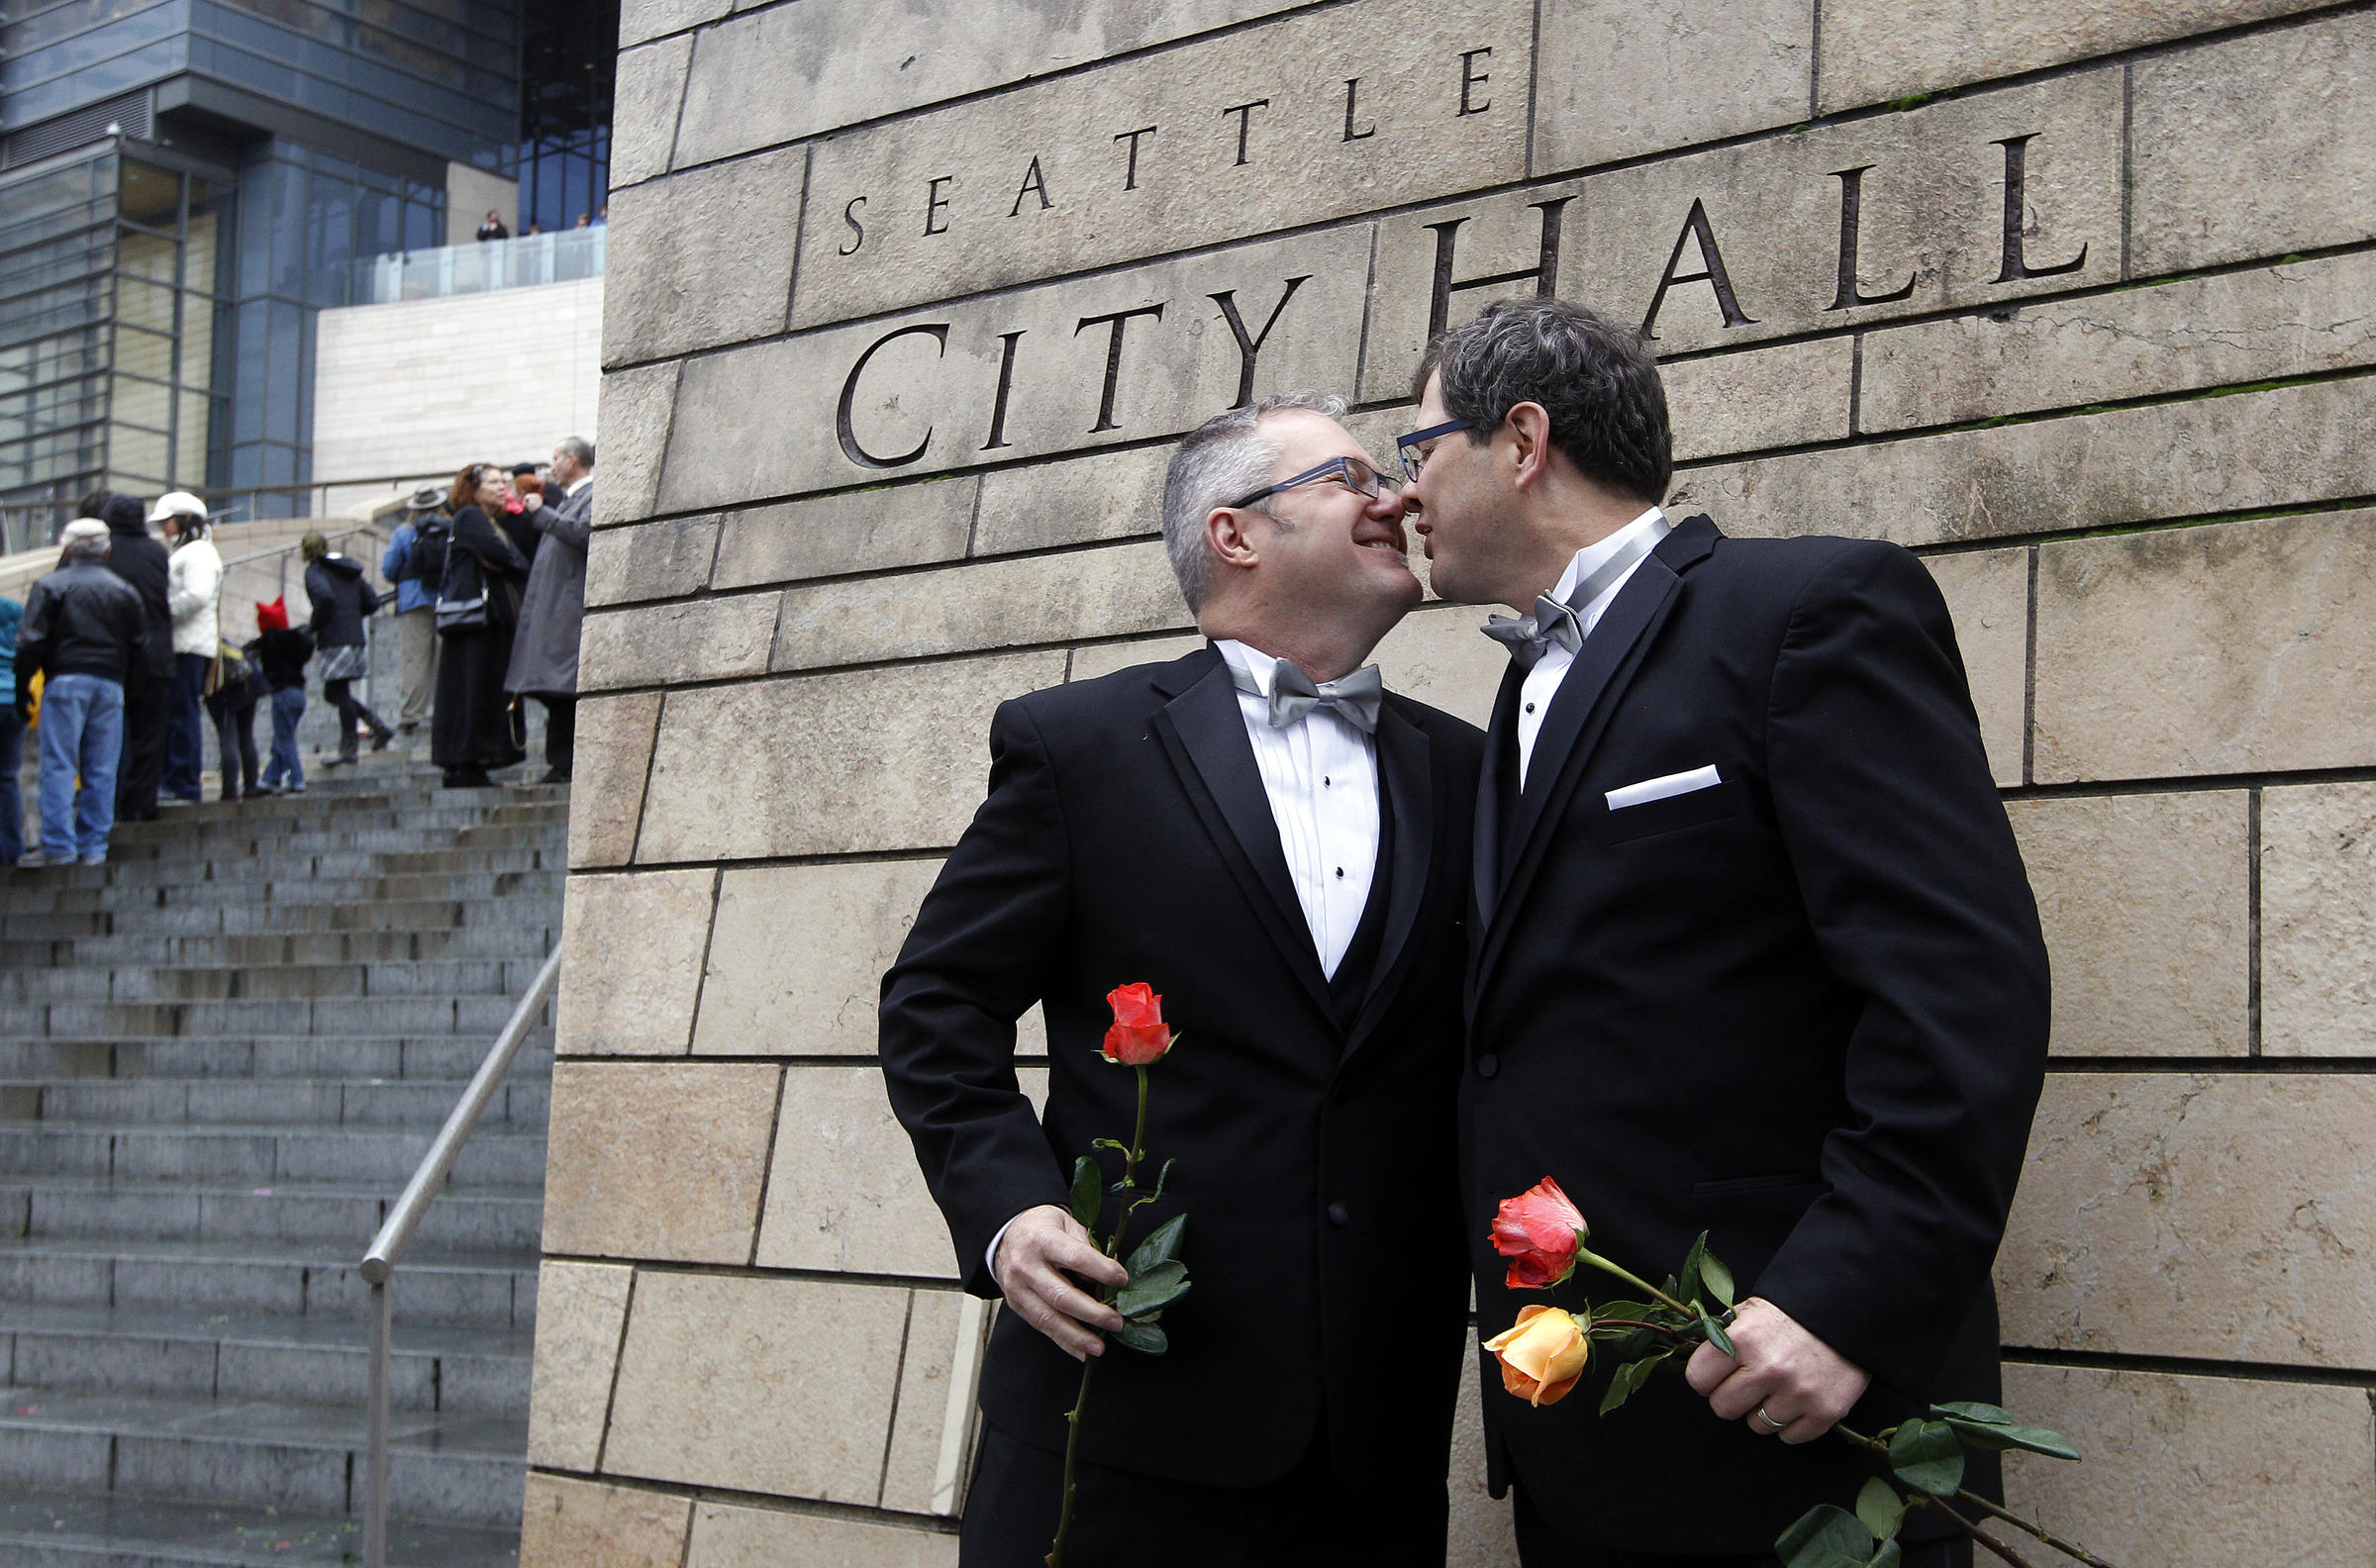 Seattle same sex marriage law